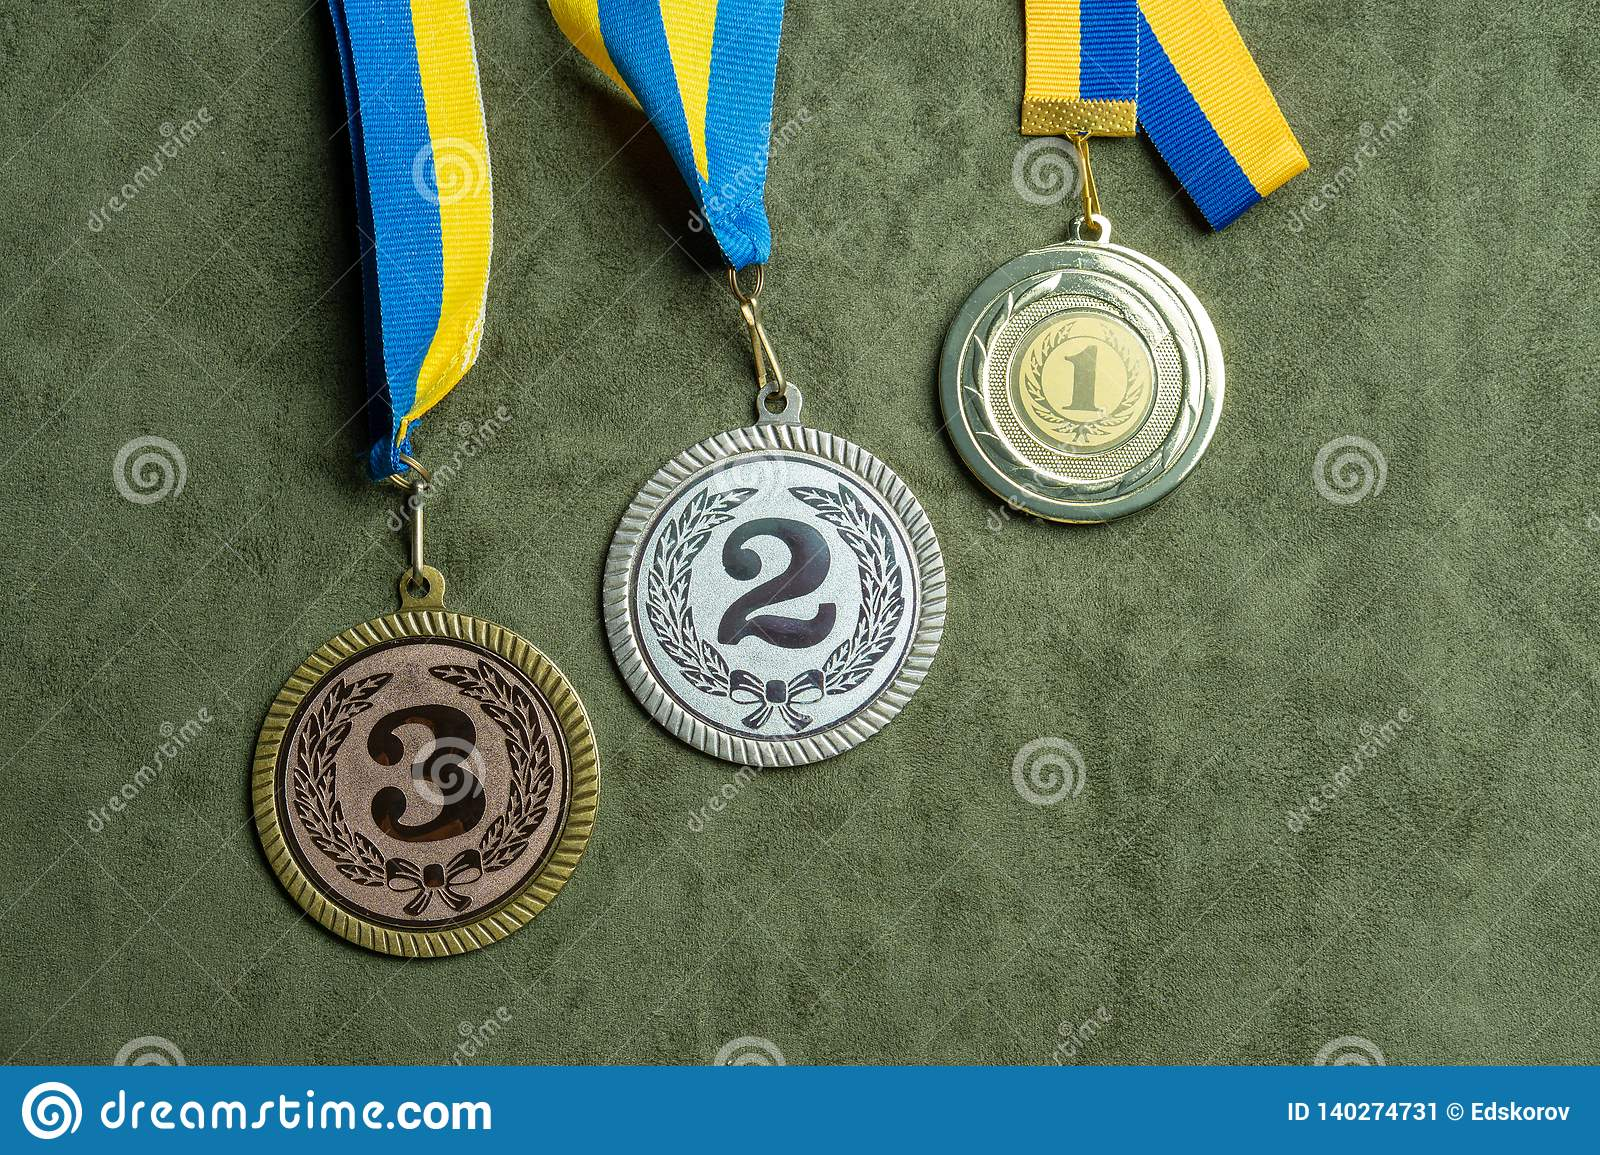 Gold, silver or bronze medal with yellow and blue ribbons